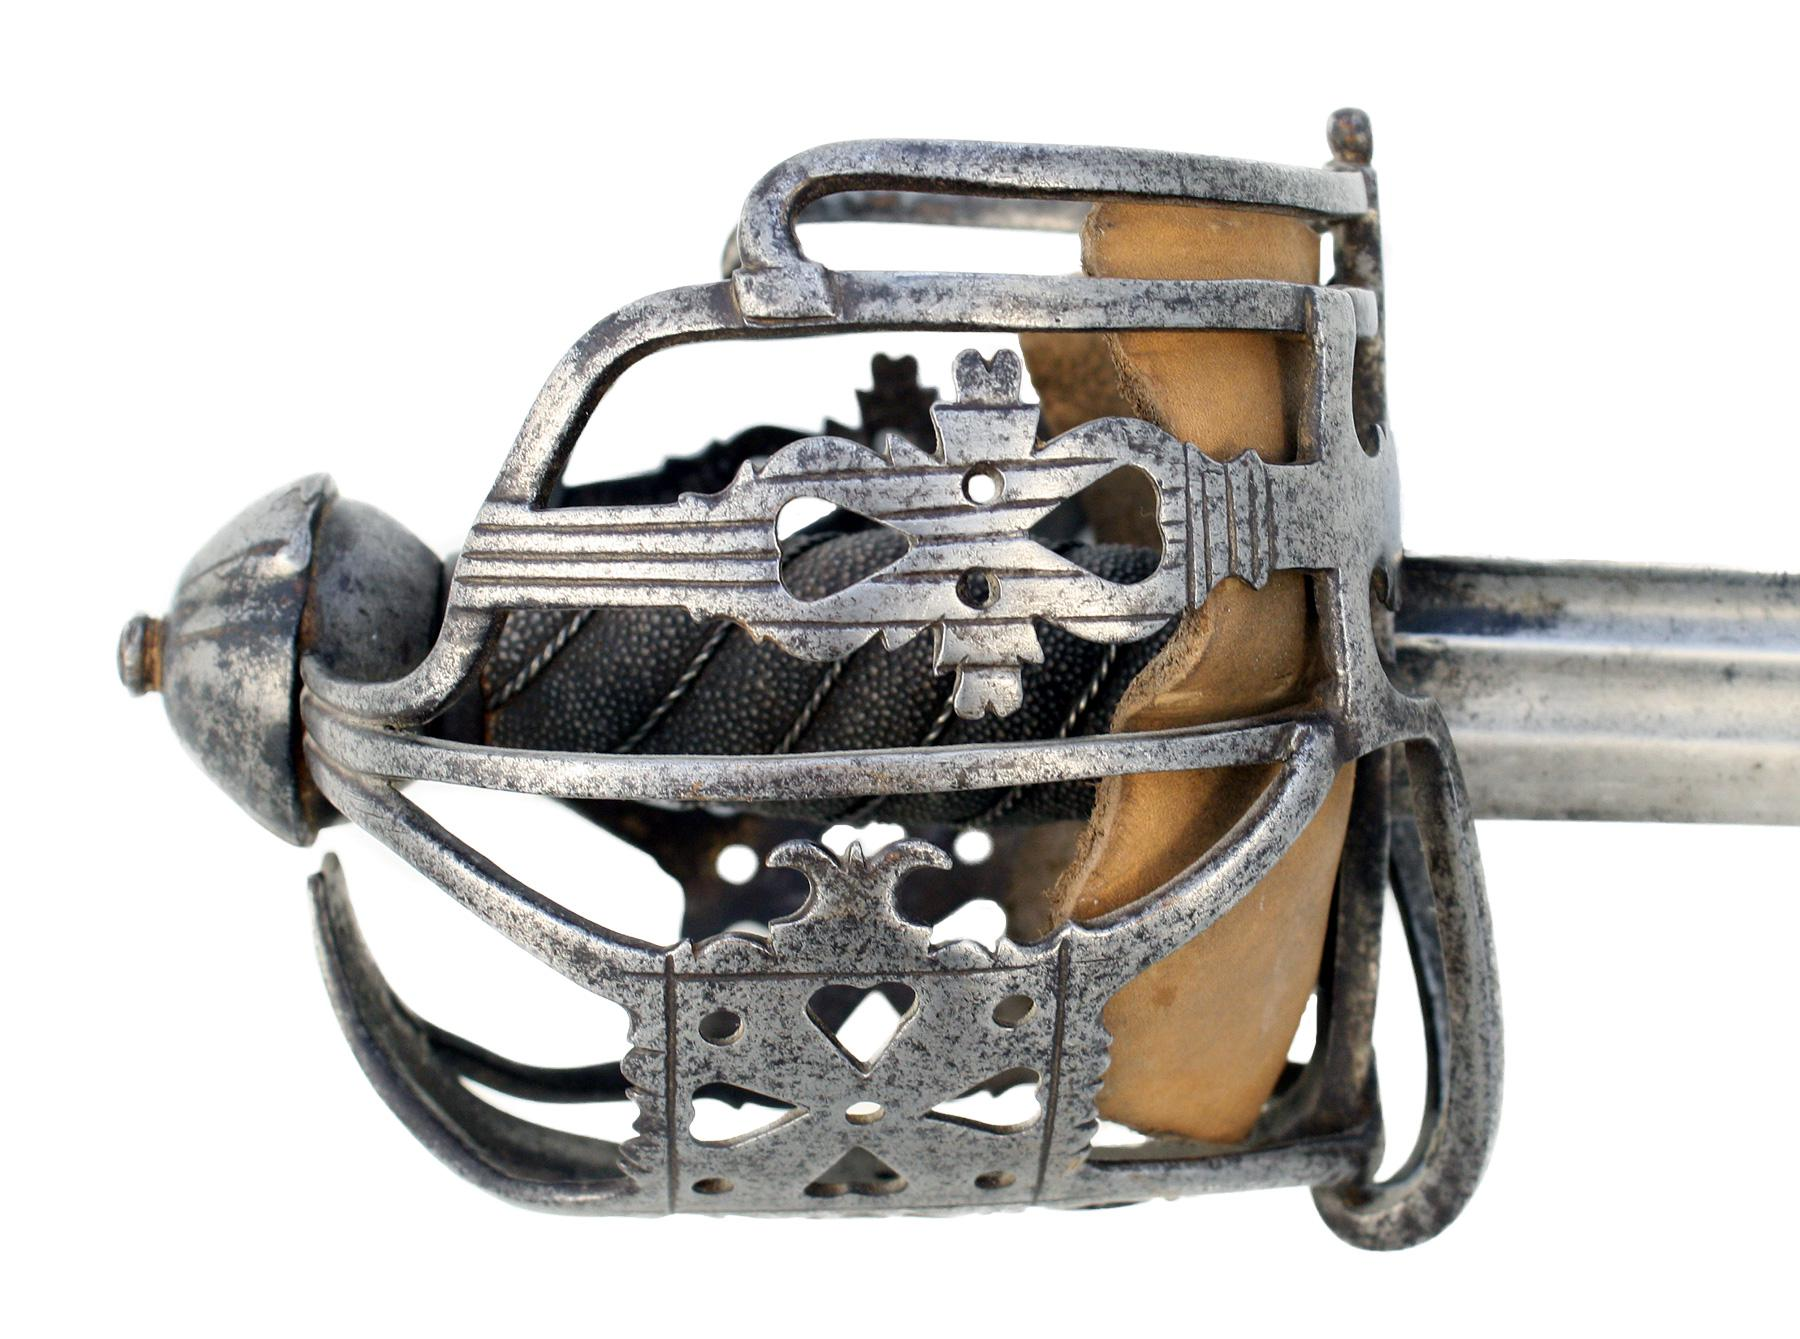 An Early Basket Hilted Sword